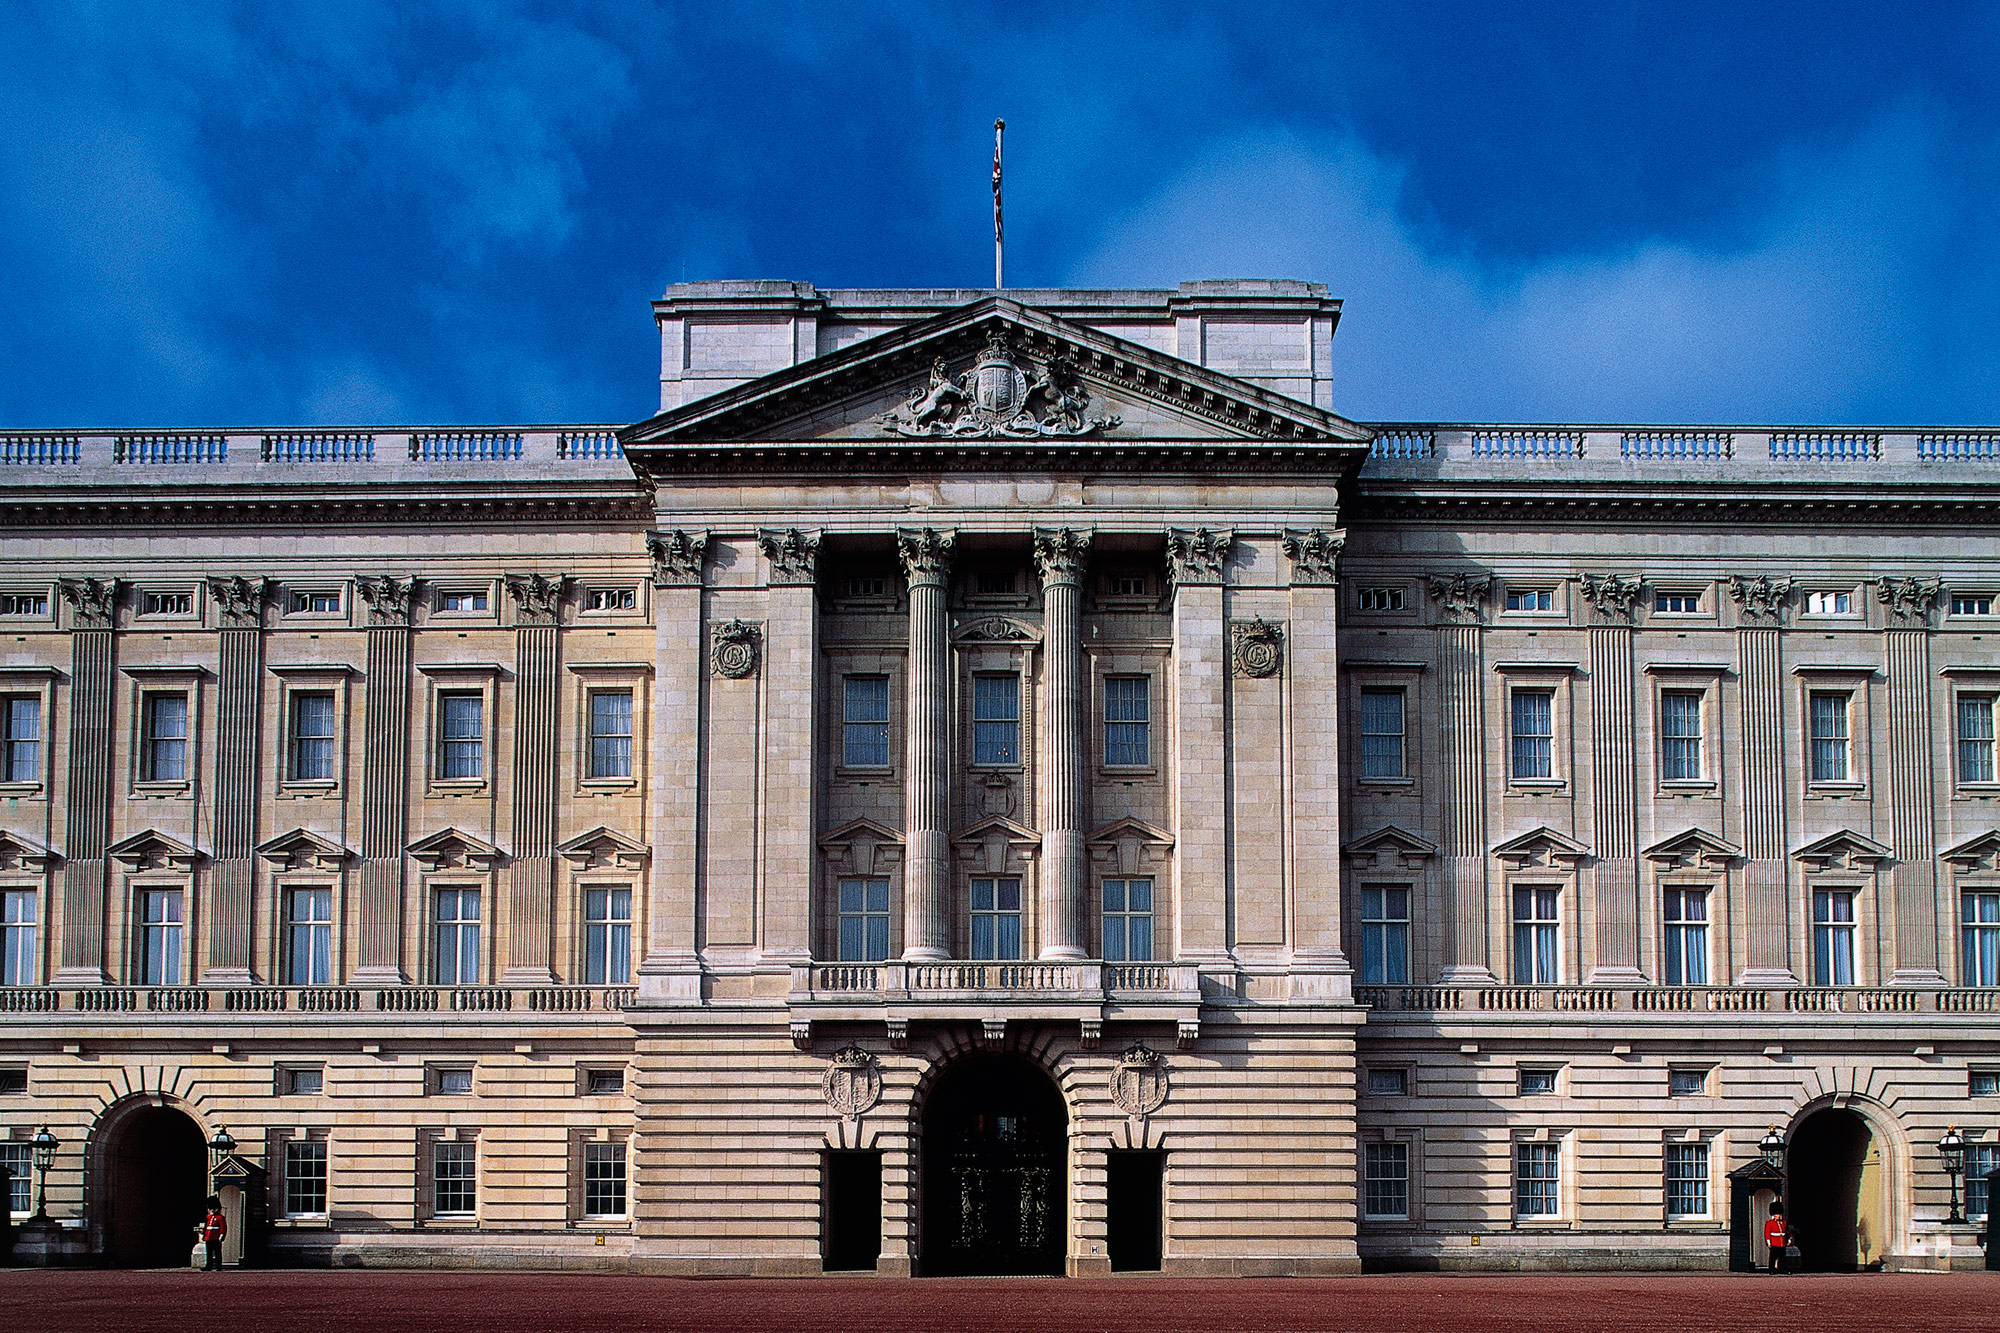 Facade of Buckingham Palace, London residence of the reigning monarch of the United Kingdom, London, England, United Kingdom.